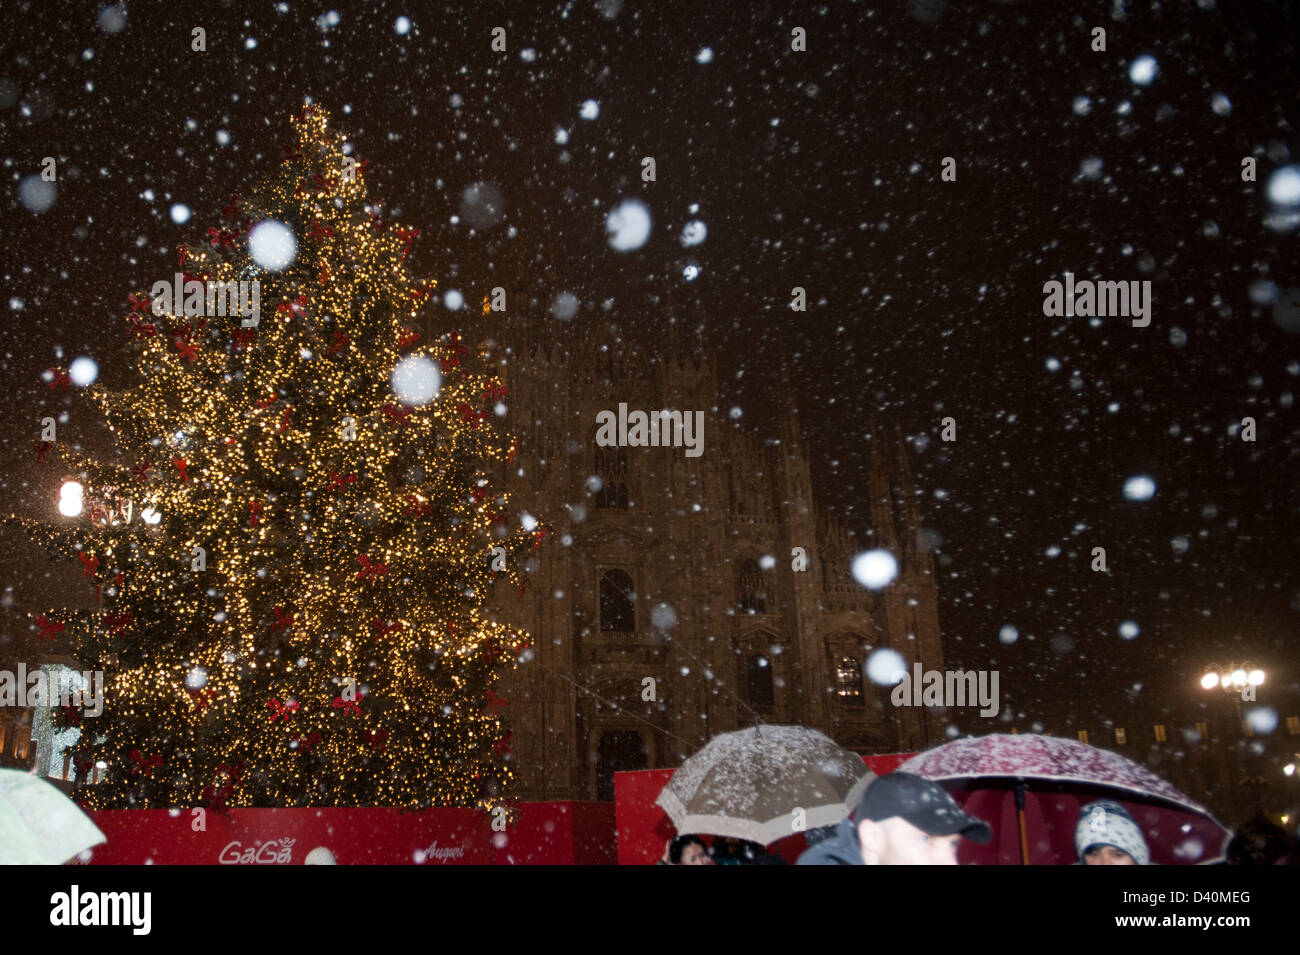 Stage chrismas tree and Duomo church with snow during Christmas at  town square at Milano, Italy Stock Photo